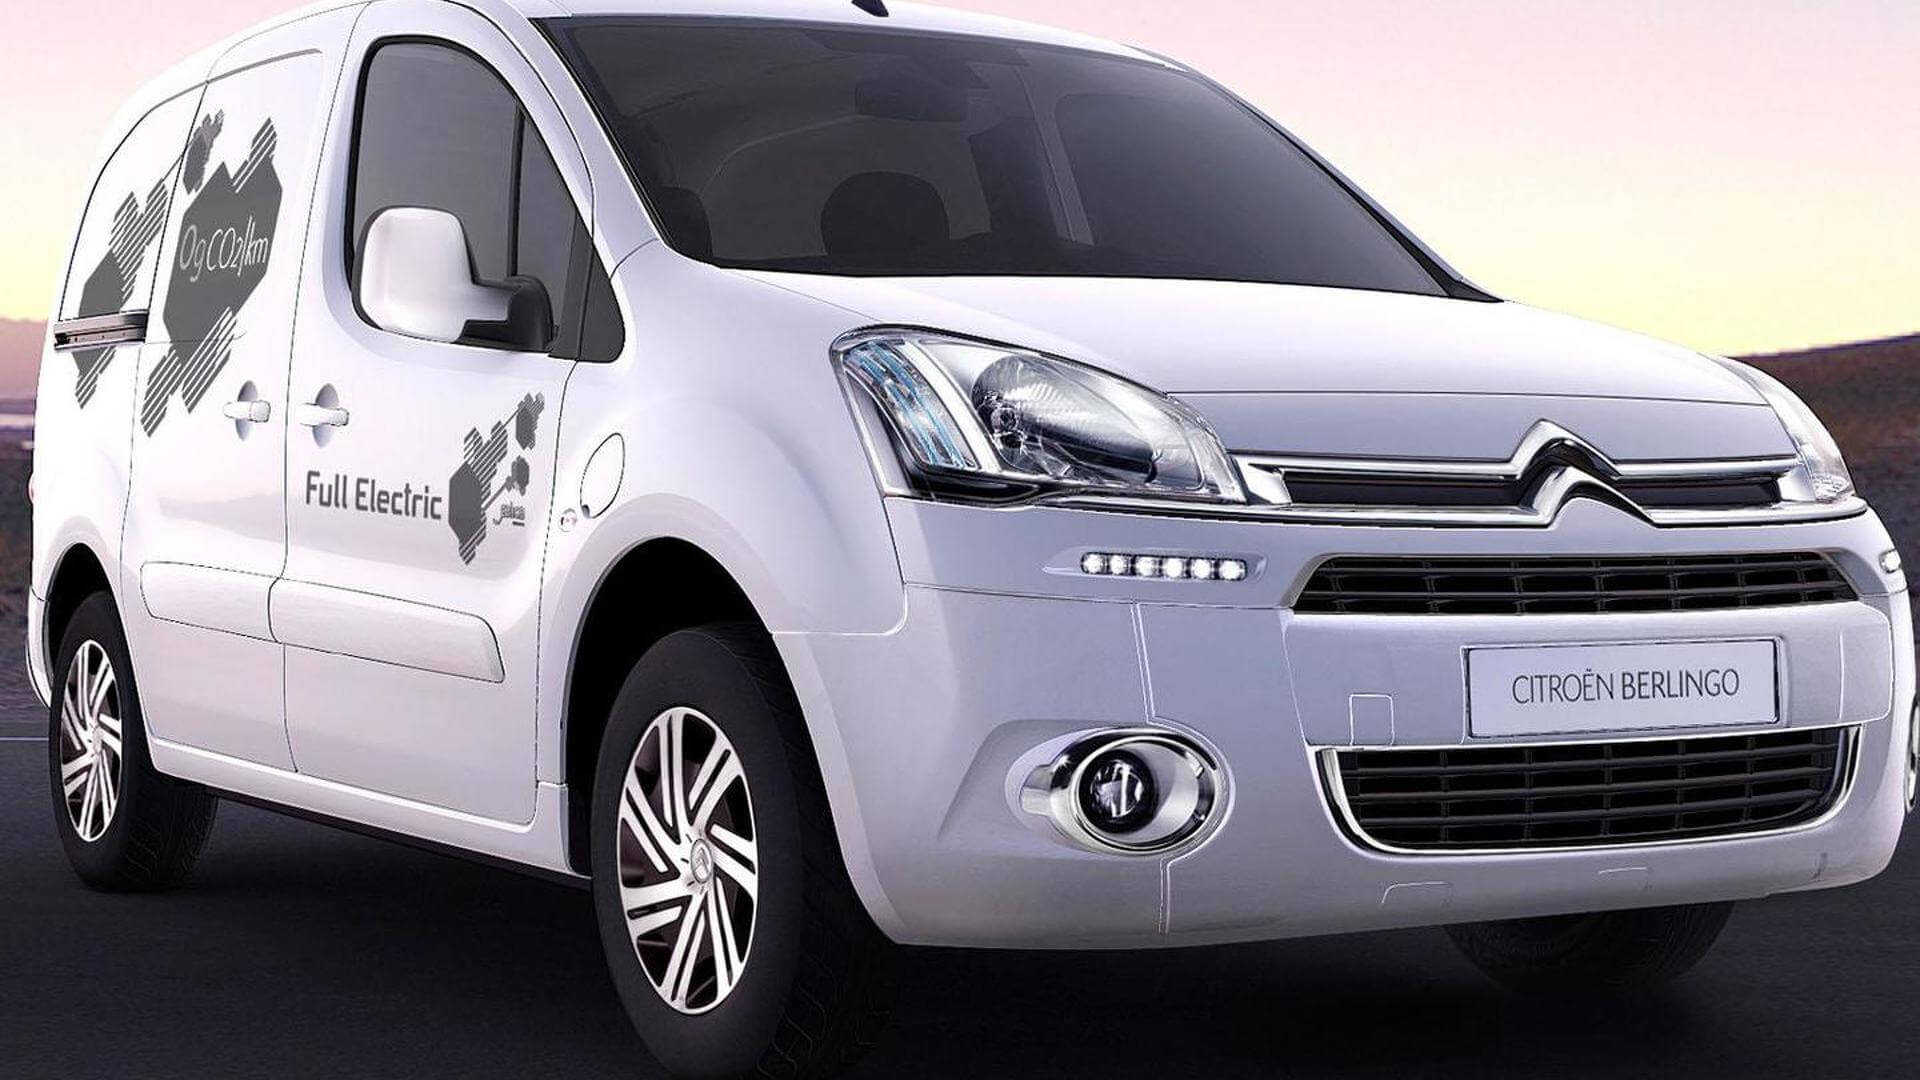 https://epunjaci.hr/wp-content/uploads/2018/10/2012-332514-2013-citroen-berlingo-electric-12-9-20121.jpg